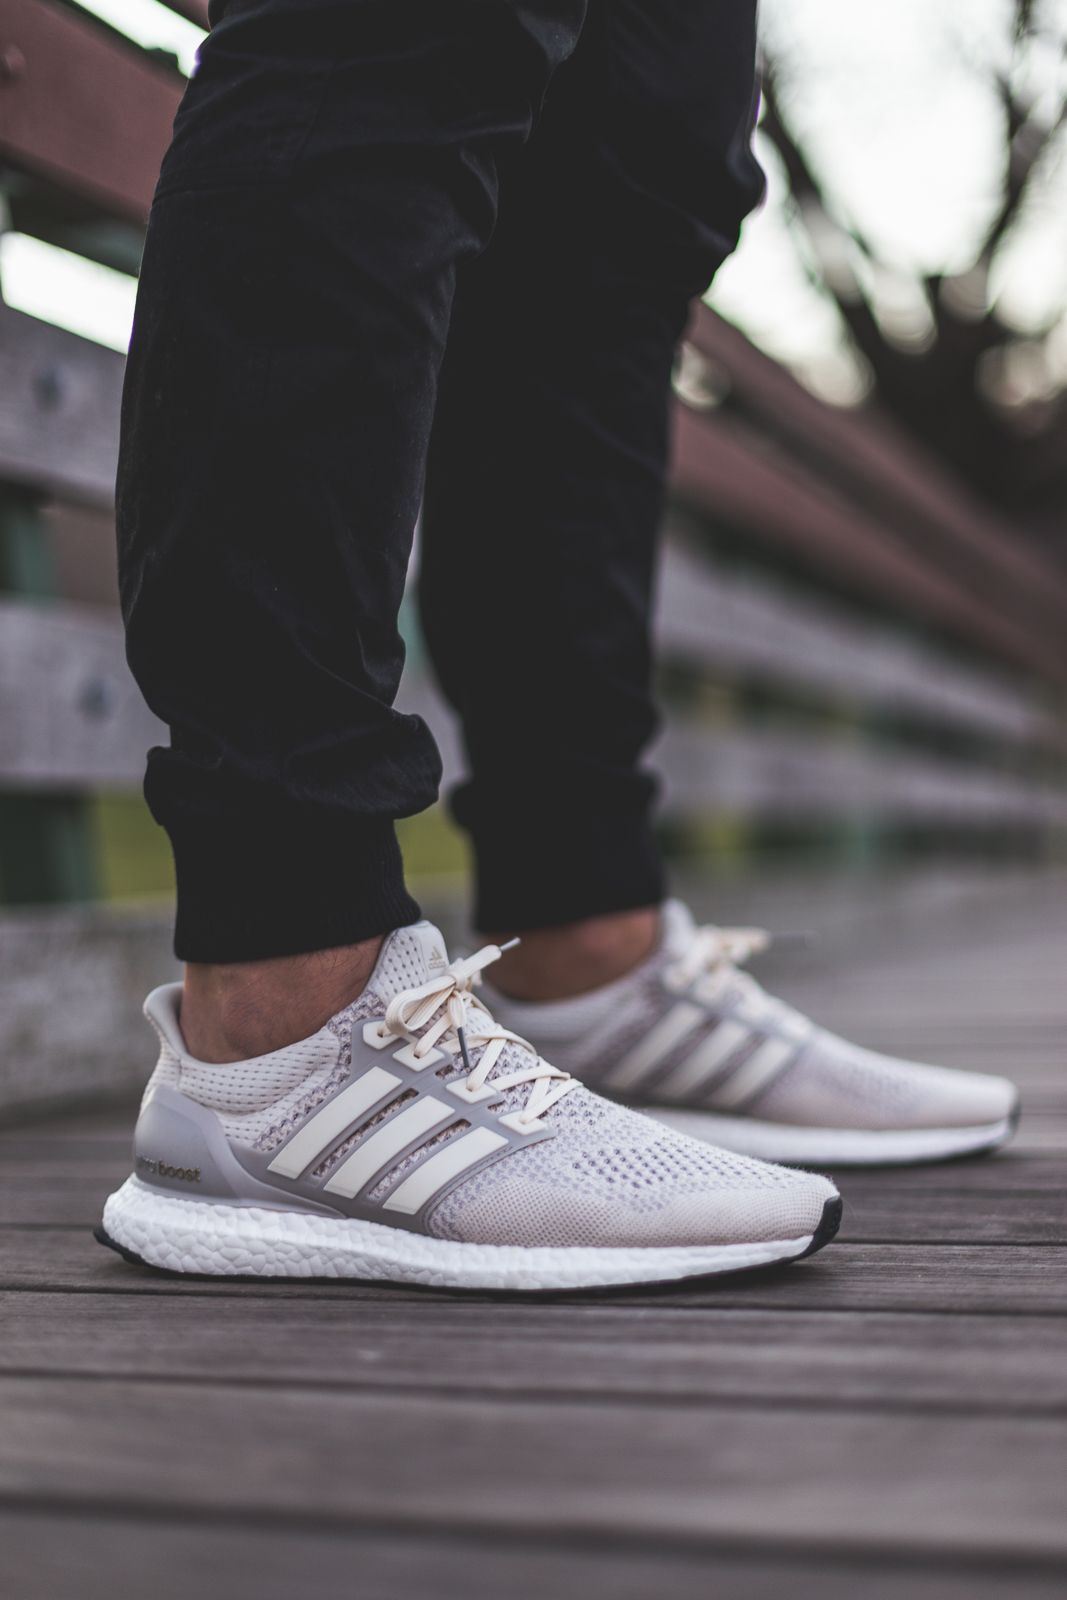 211dbf4bf1f67 Adidas Ultra Boost LTD Cream